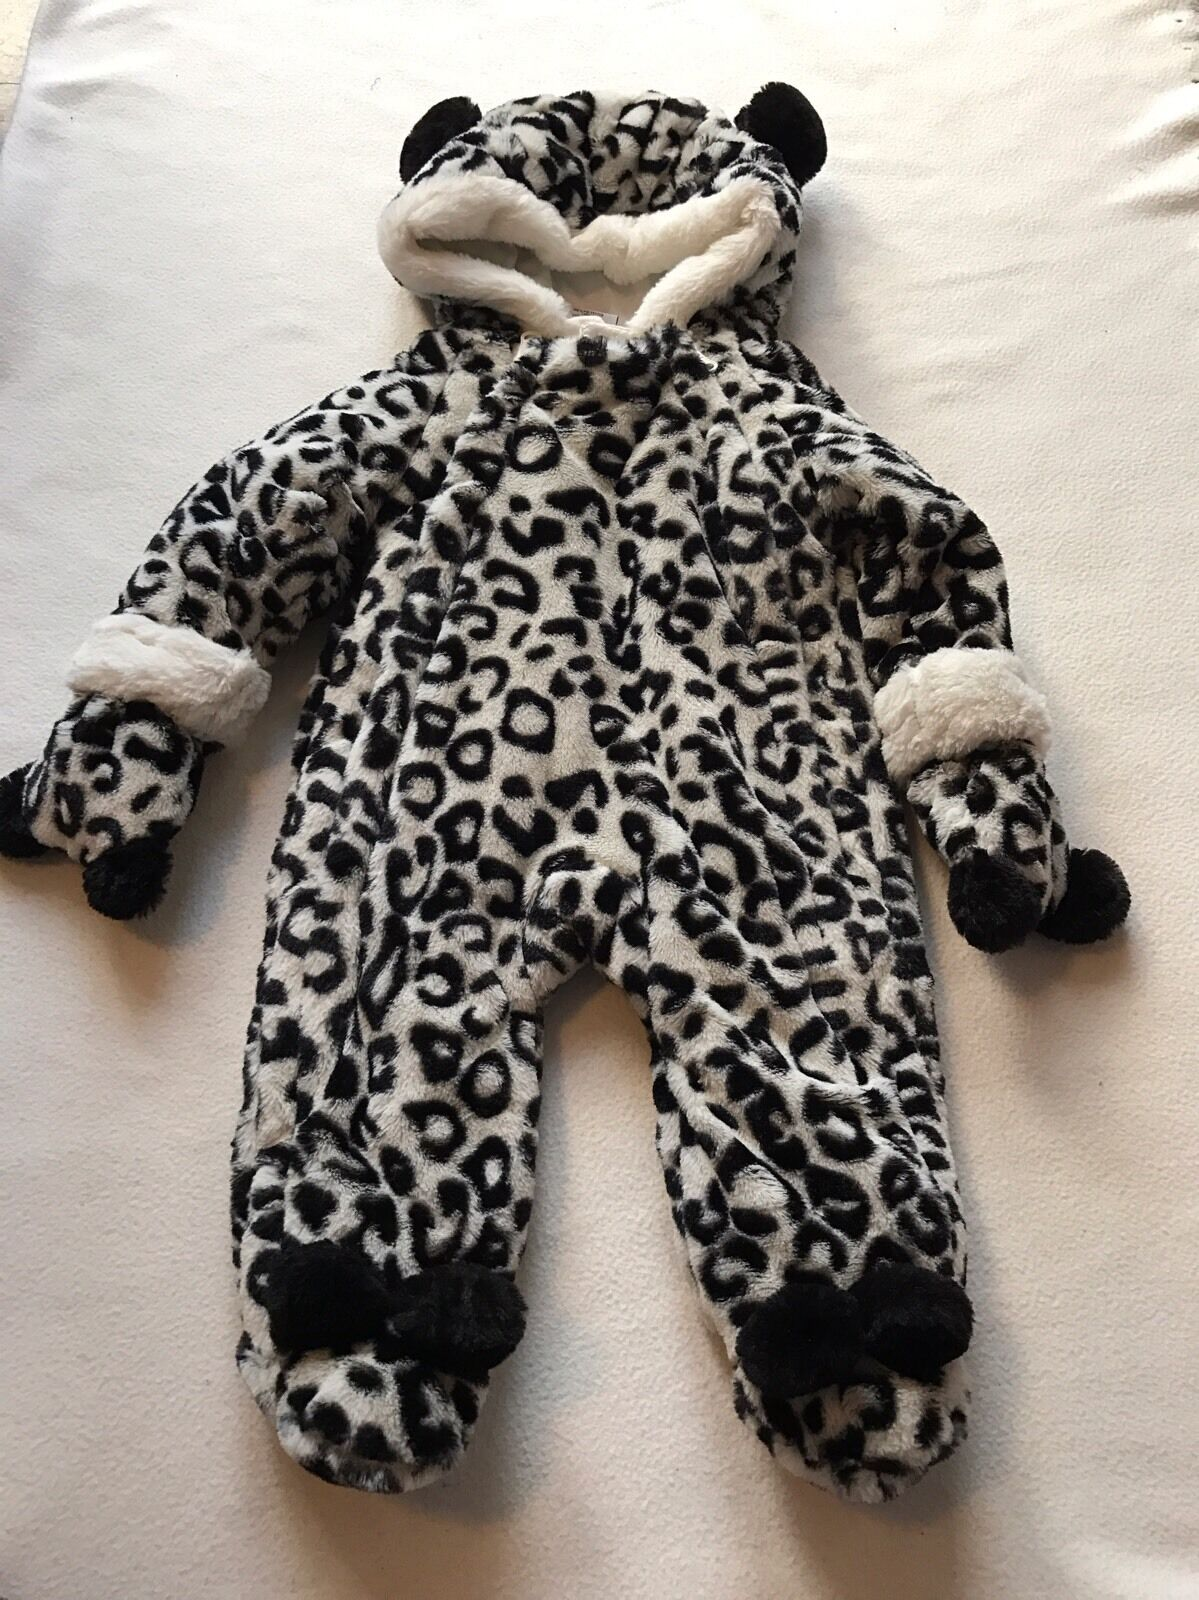 Cosy snowsuit in peony leopard print. Concealed zip closure through front with a removable hood and matching mittens. With concealed feet for sizes months.